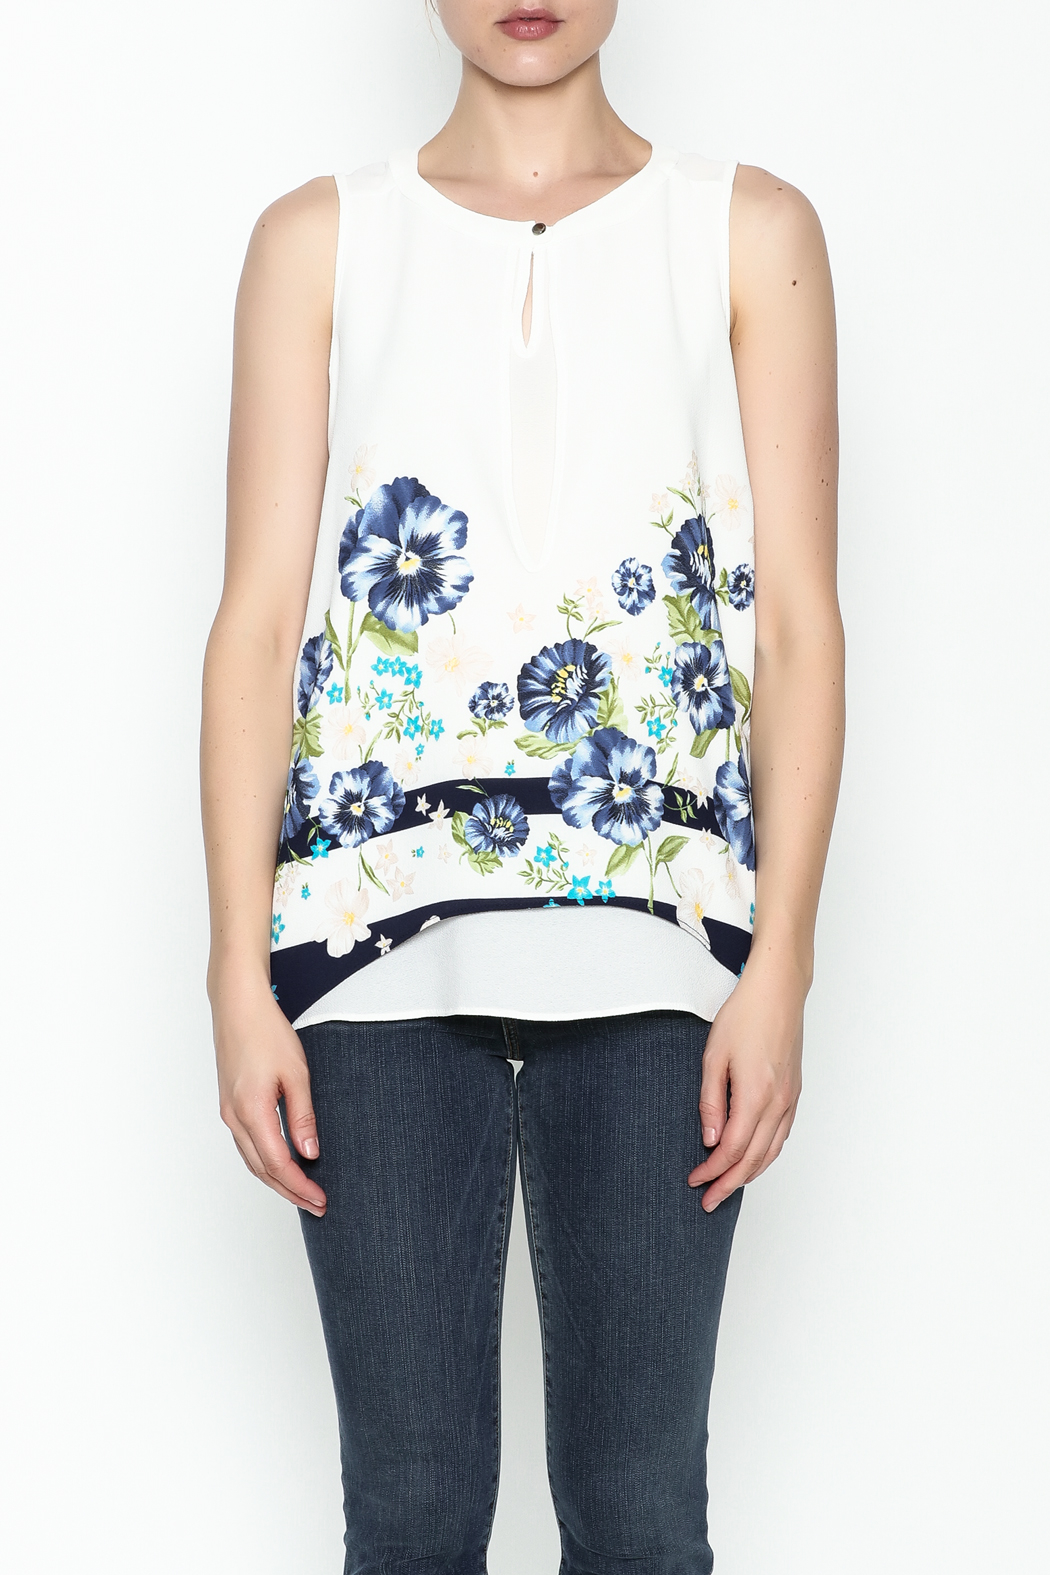 Marvy Fashion Flower Printed Top - Front Full Image